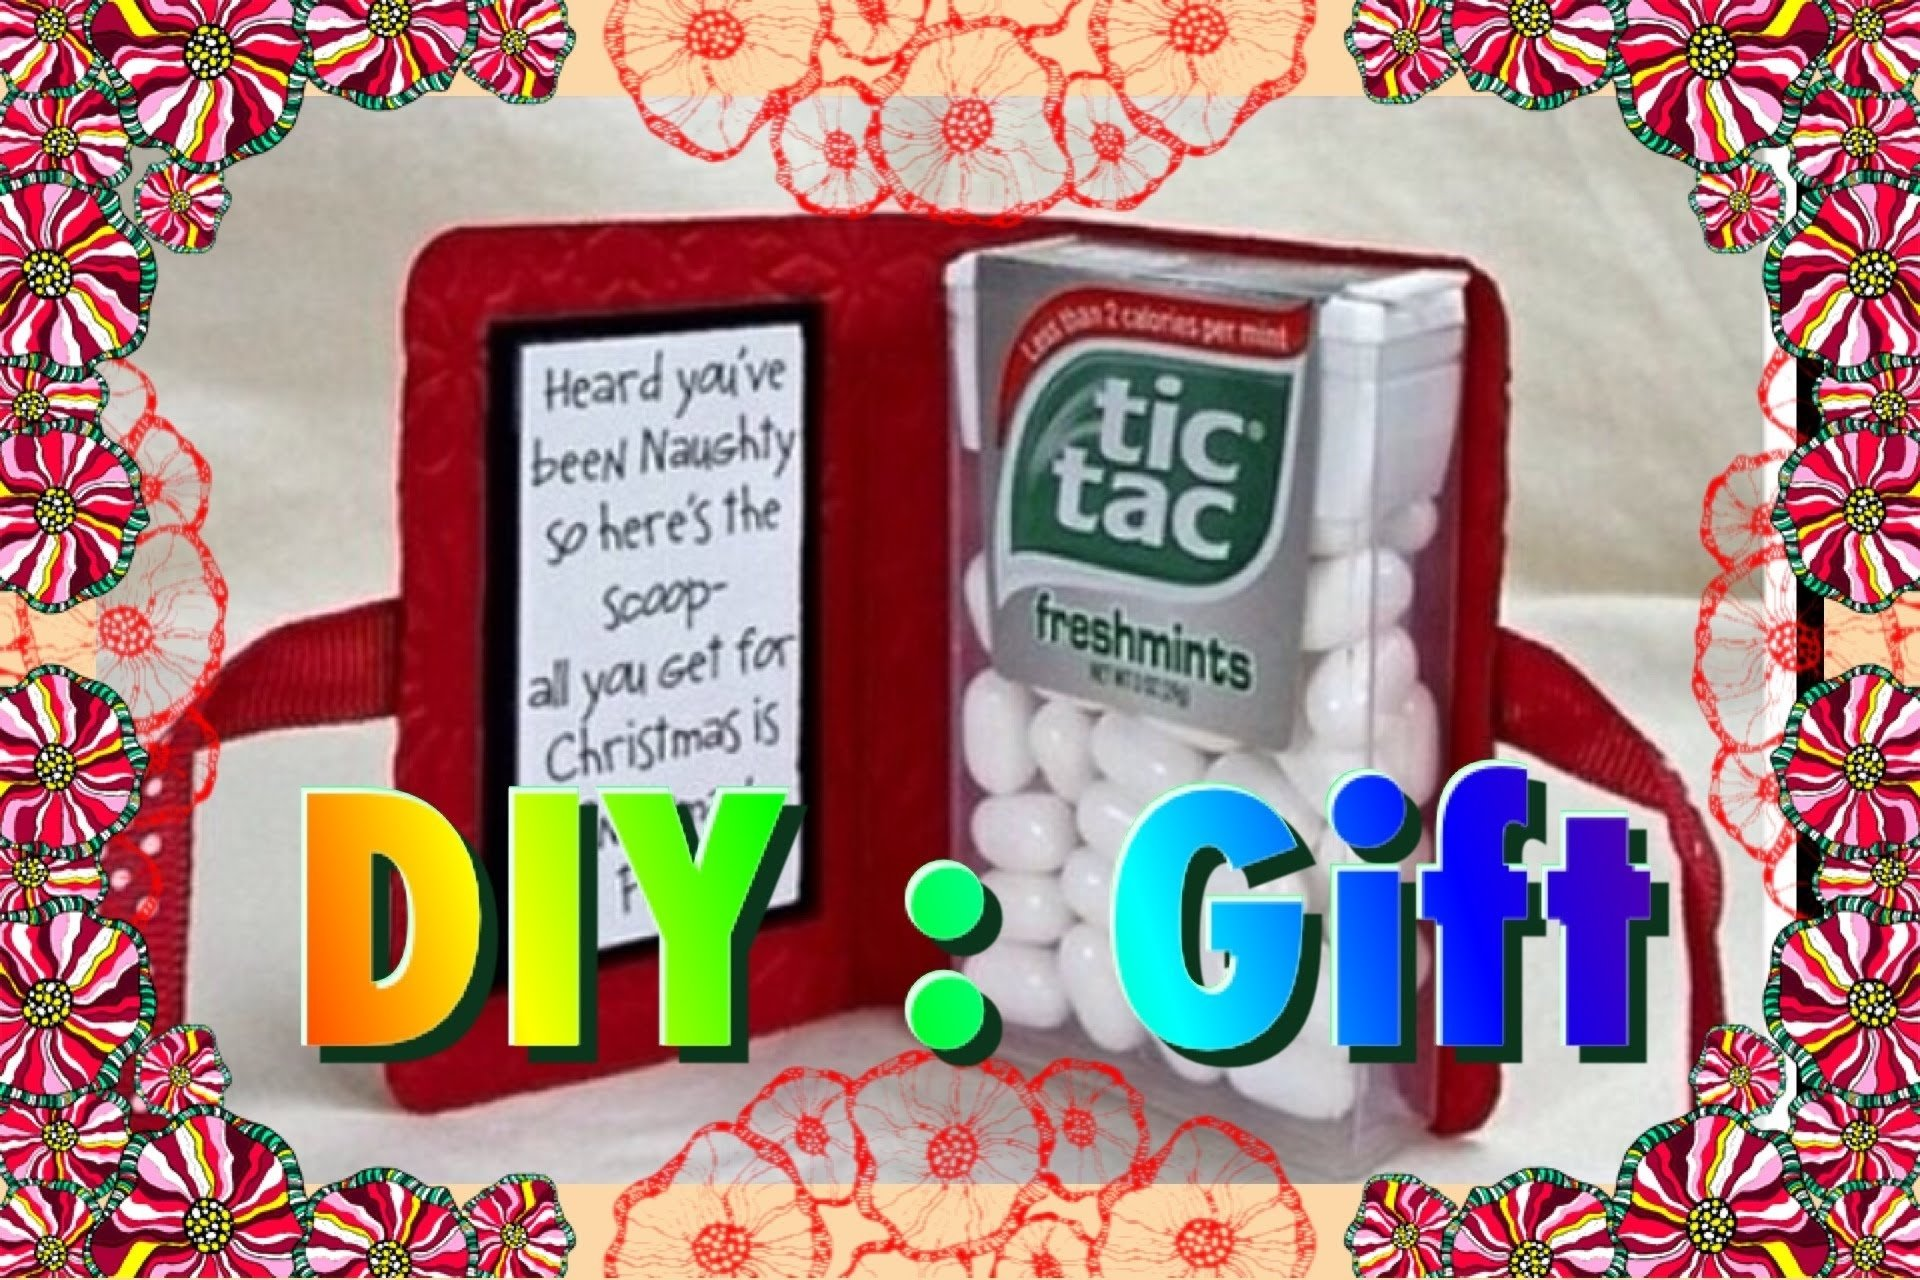 10 Fashionable Last Minute Birthday Gift Ideas diy last minute funny and cute christmas gift snowman poop youtube 5